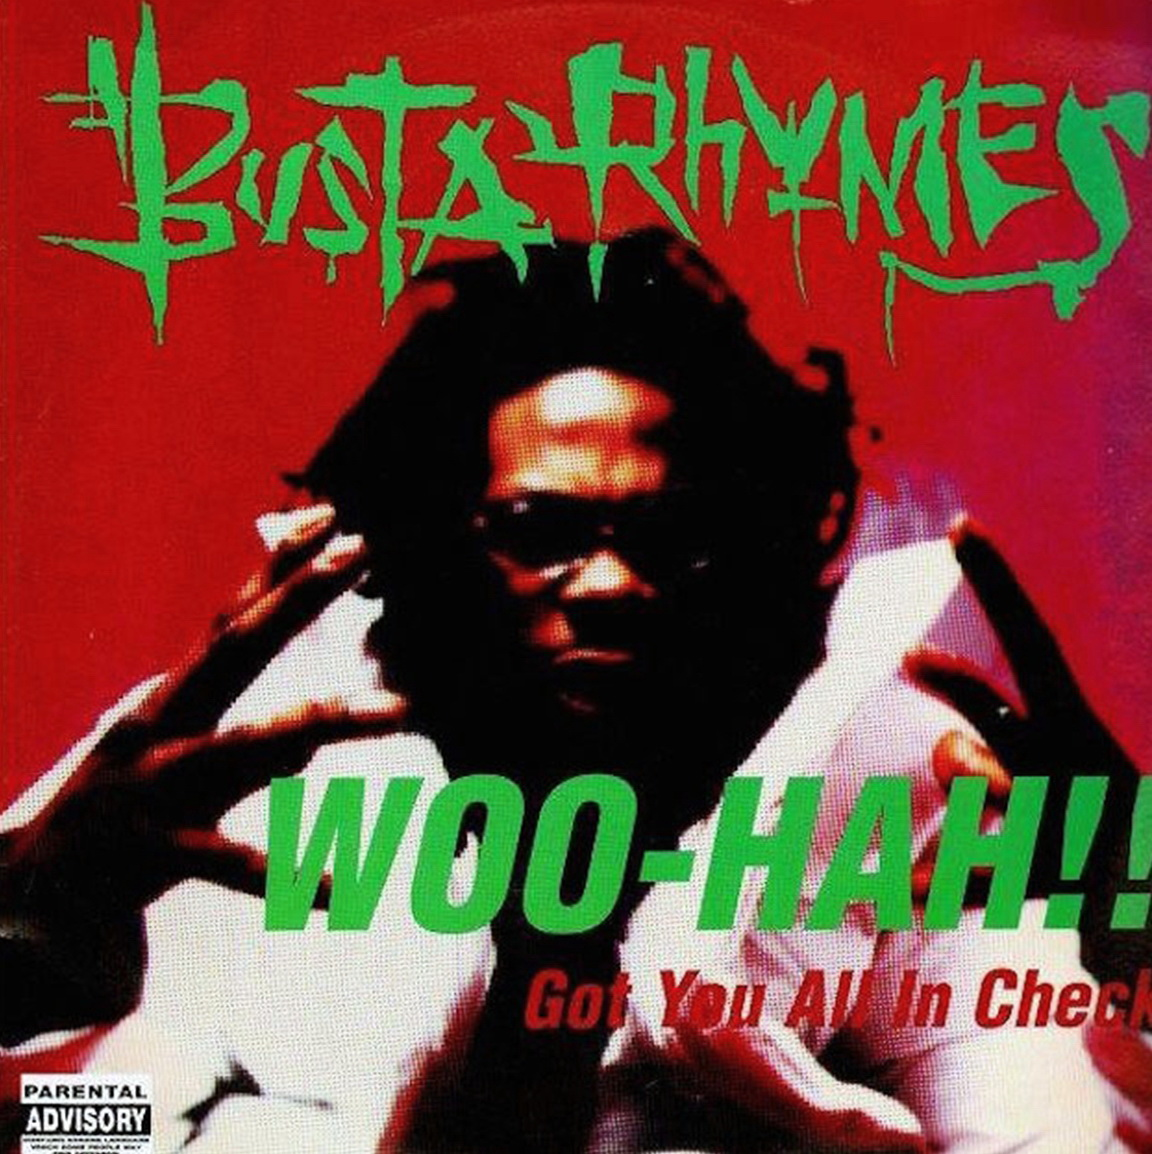 Busta Rhymes - Woo Hah!! Got You All In Check (1996)